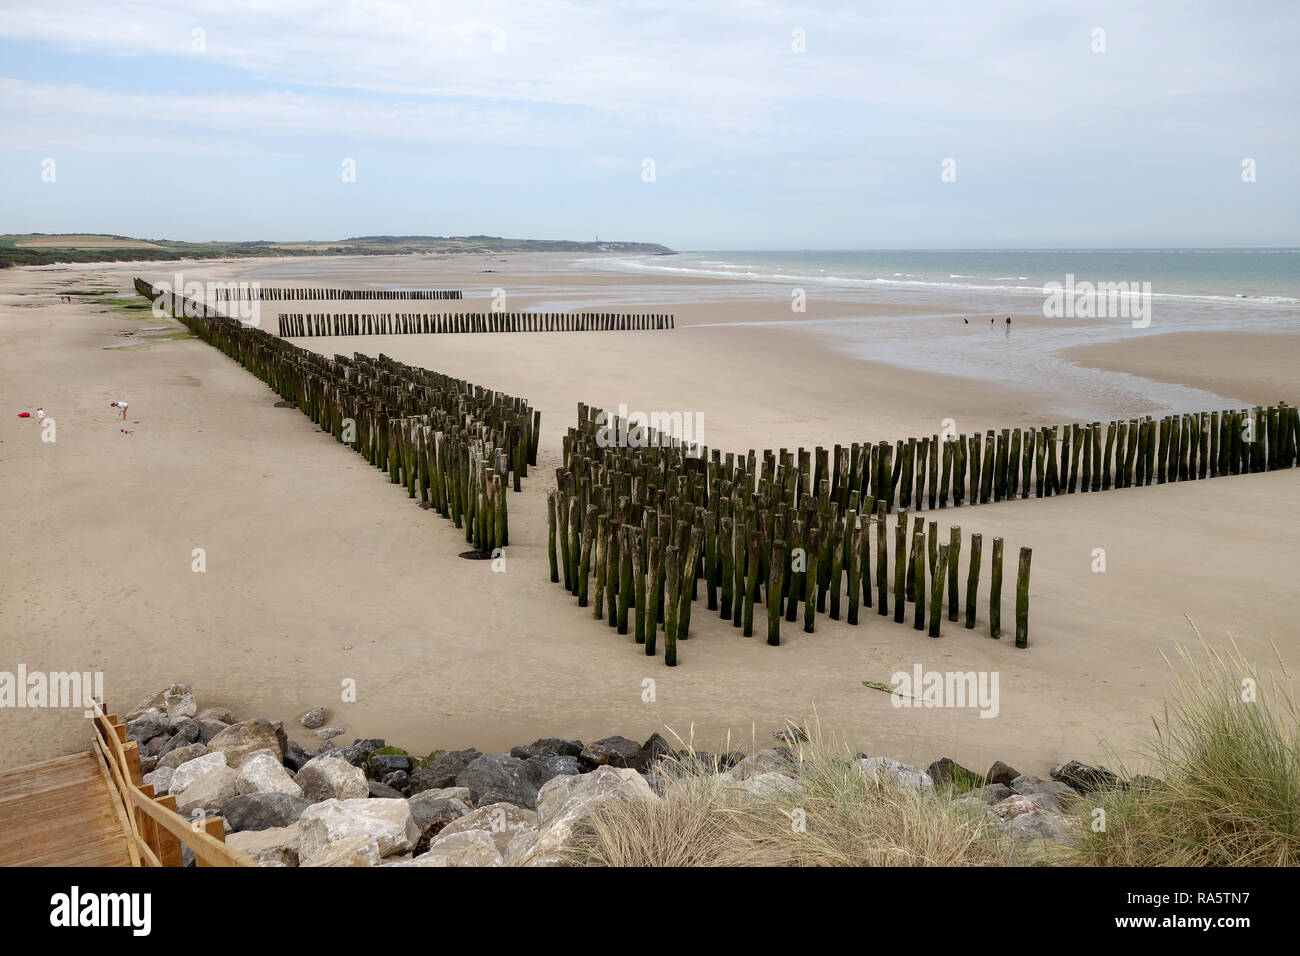 Wooden posts sea defences to protect sand dunes at Wissant France - Stock Image